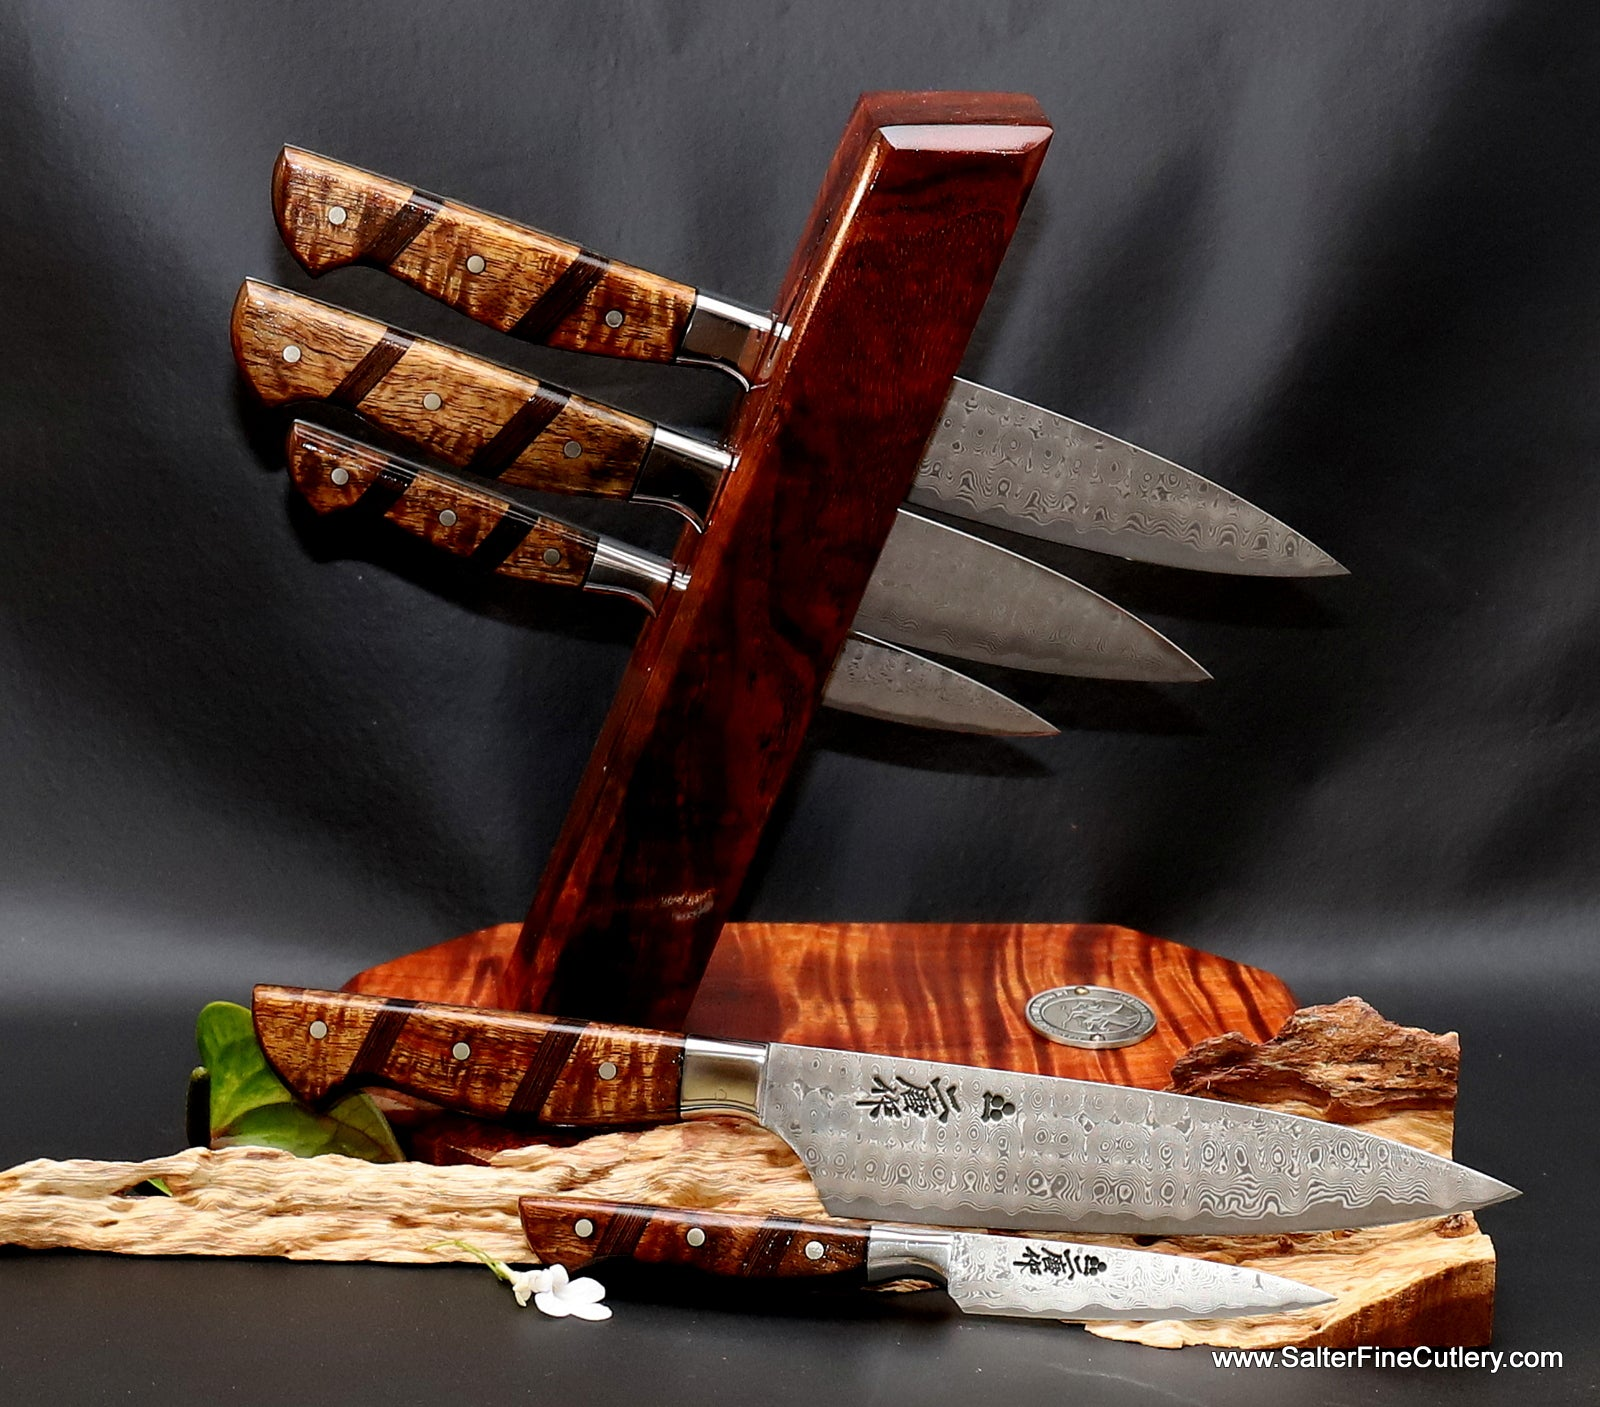 Charybdis collection custom luxury chef knives and kitchen knife sets from Salter Fine Cutlery of Hawaii